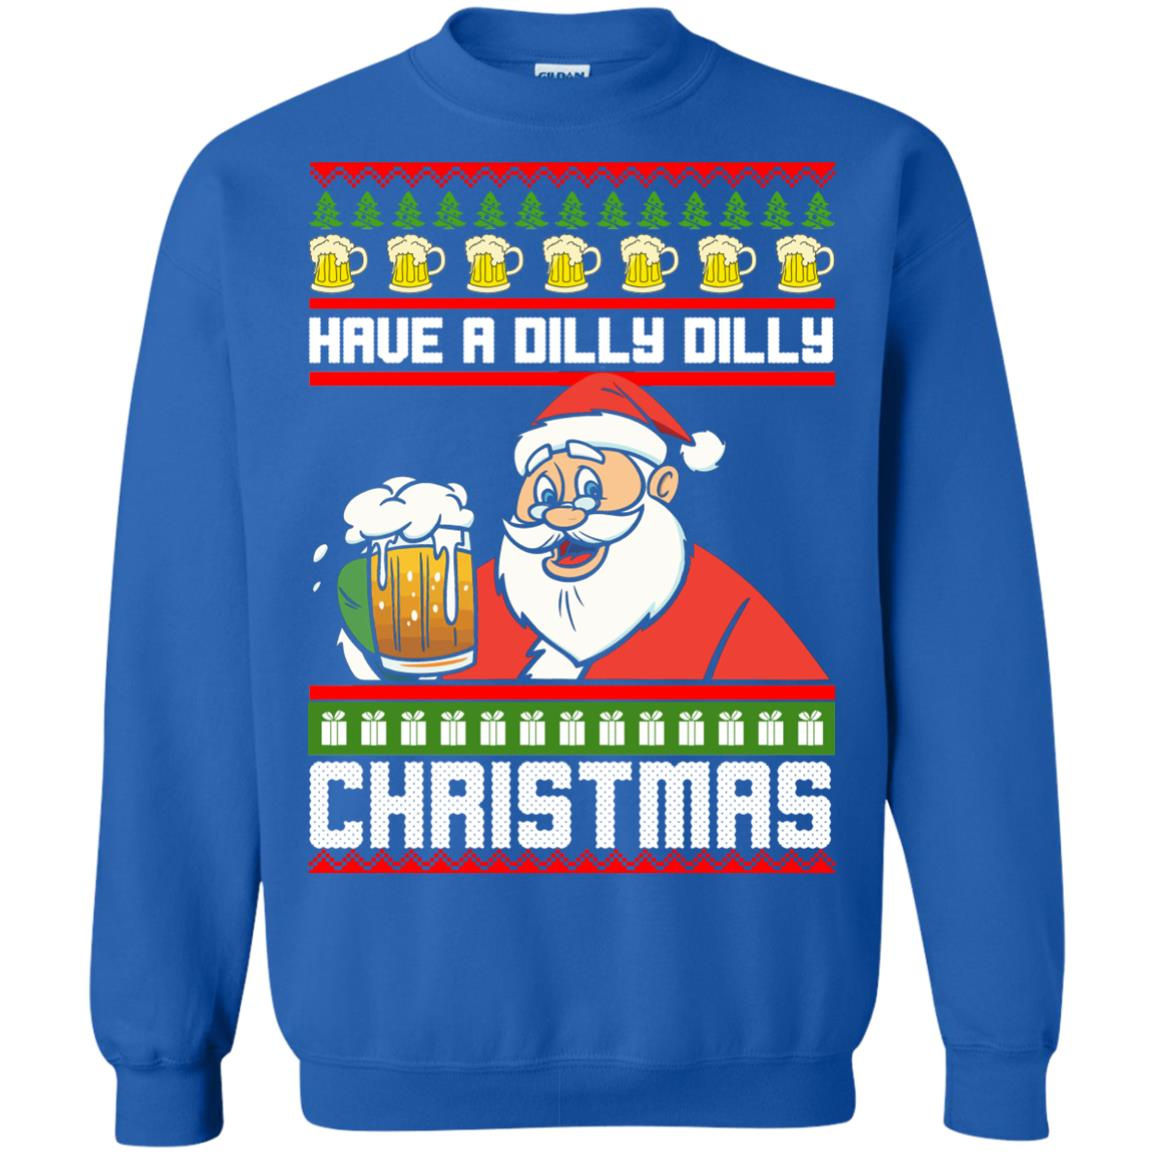 image 6136 - Have a Dilly Dilly Christmas Ugly Sweatshirt, Long Sleeve